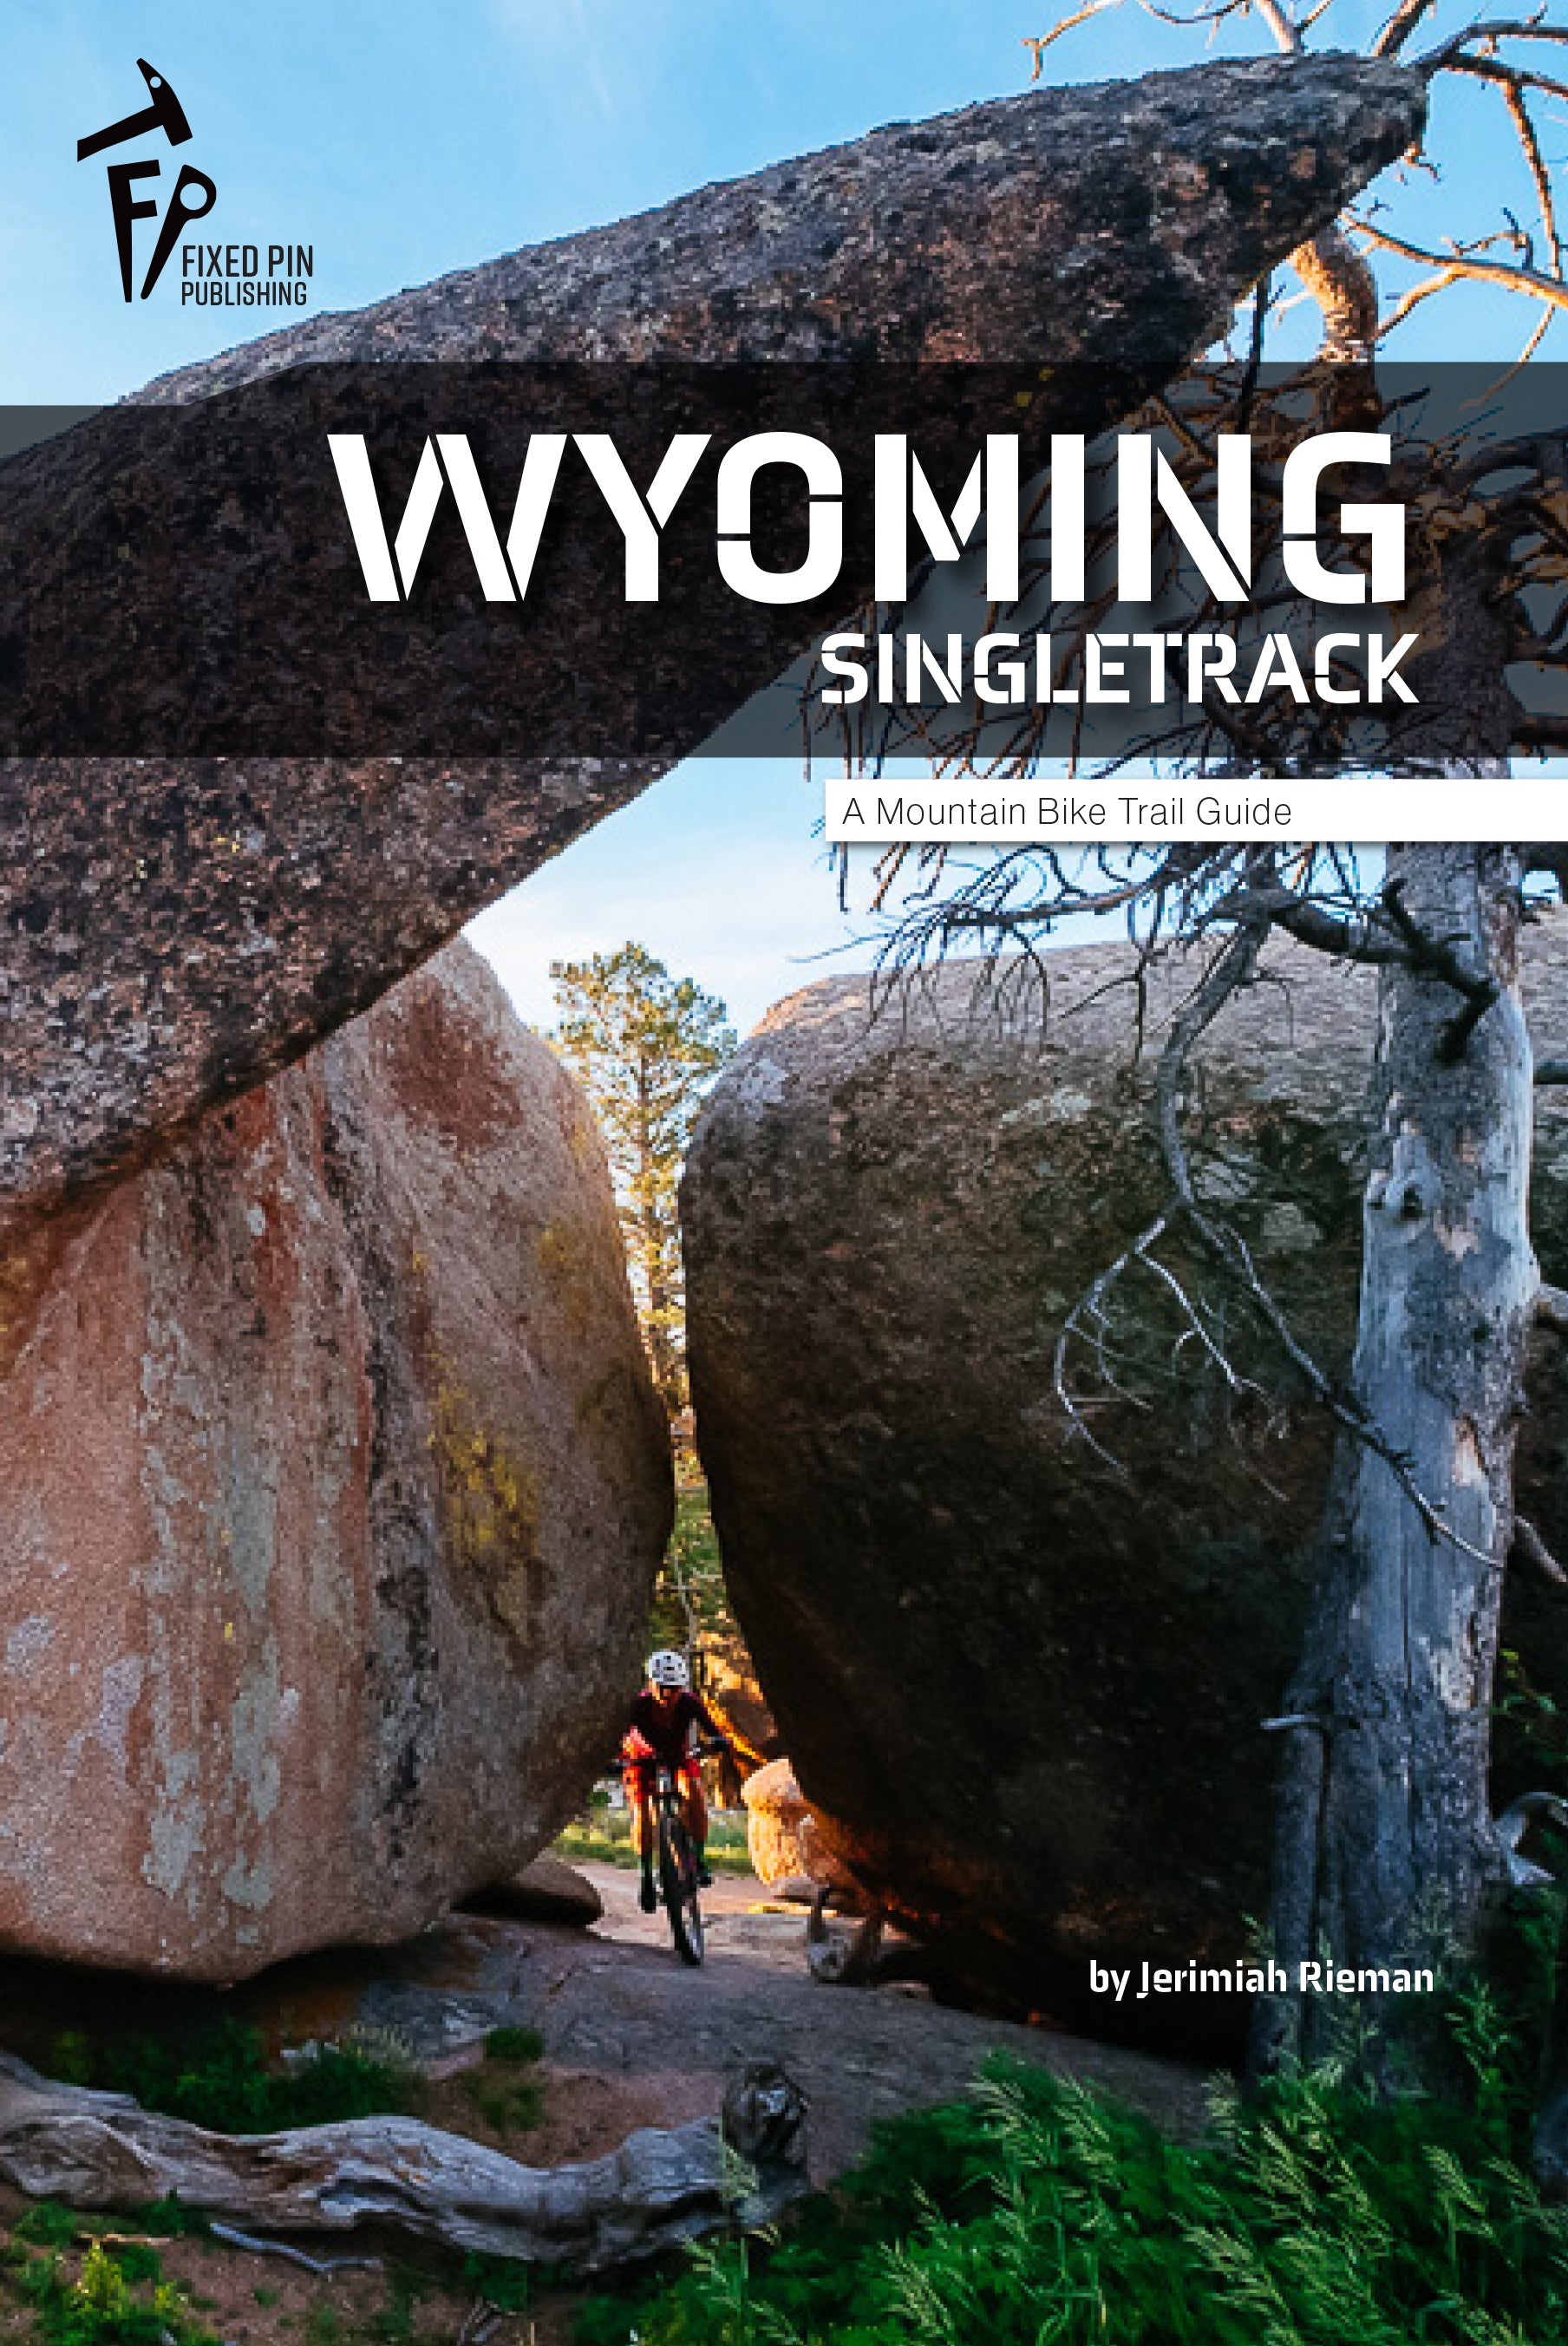 Wyoming Singletrack